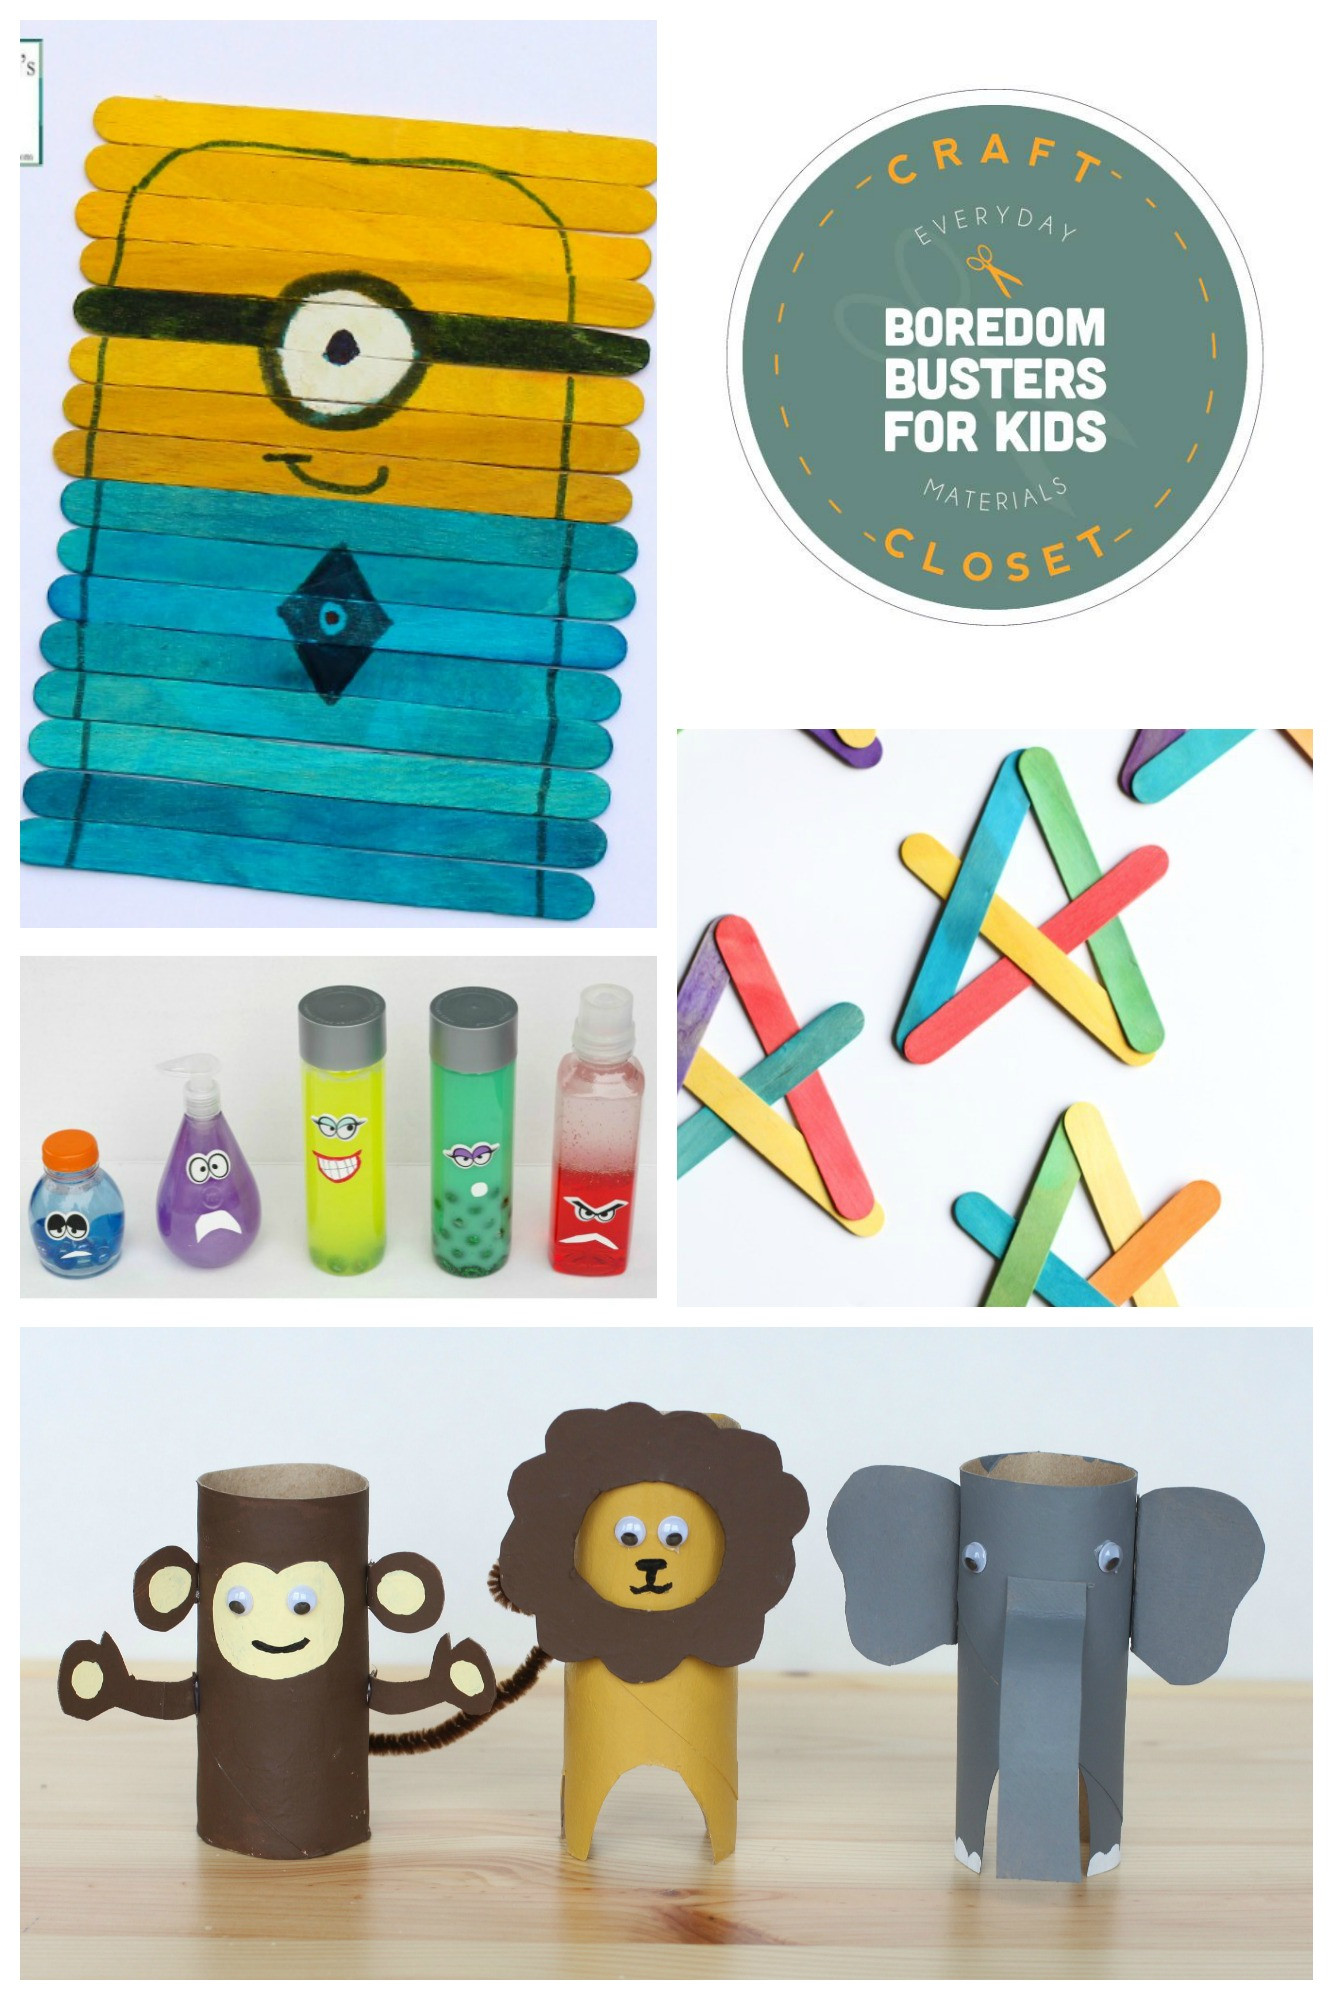 Best ideas about Crafts For Kids To Do At Home . Save or Pin 25 Crafts and Activities for Kids Using Everyday Materials Now.